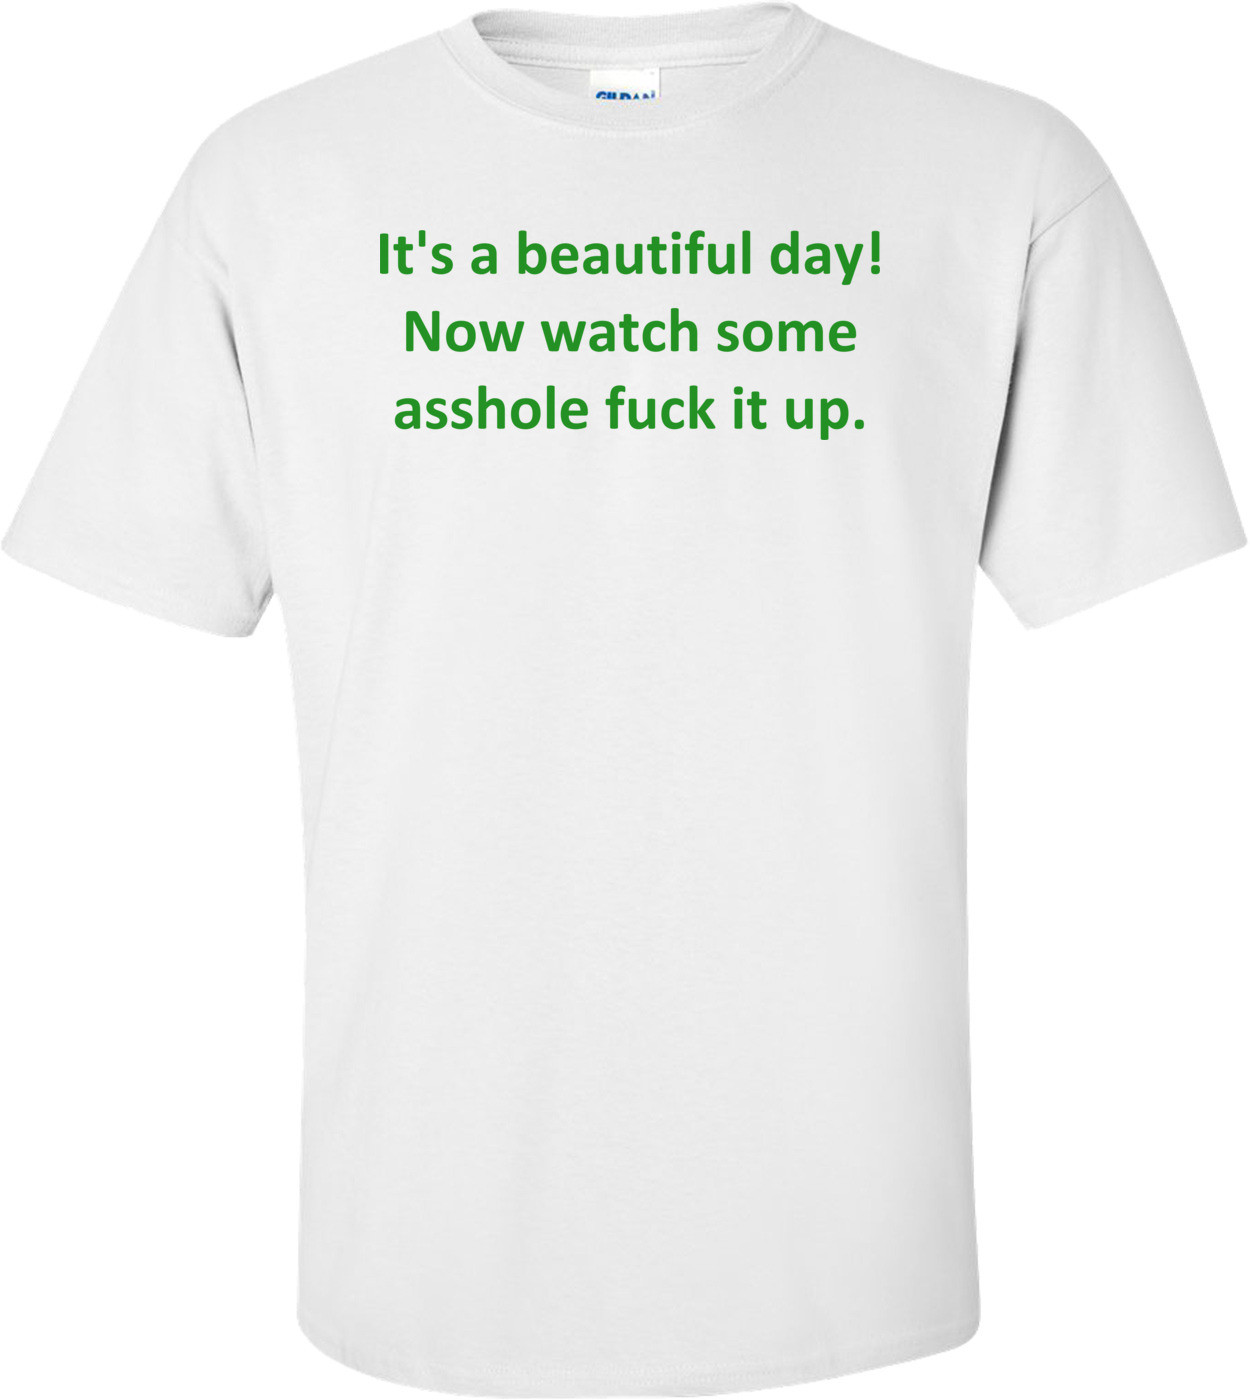 It's a beautiful day! Now watch some asshole fuck it up. Shirt